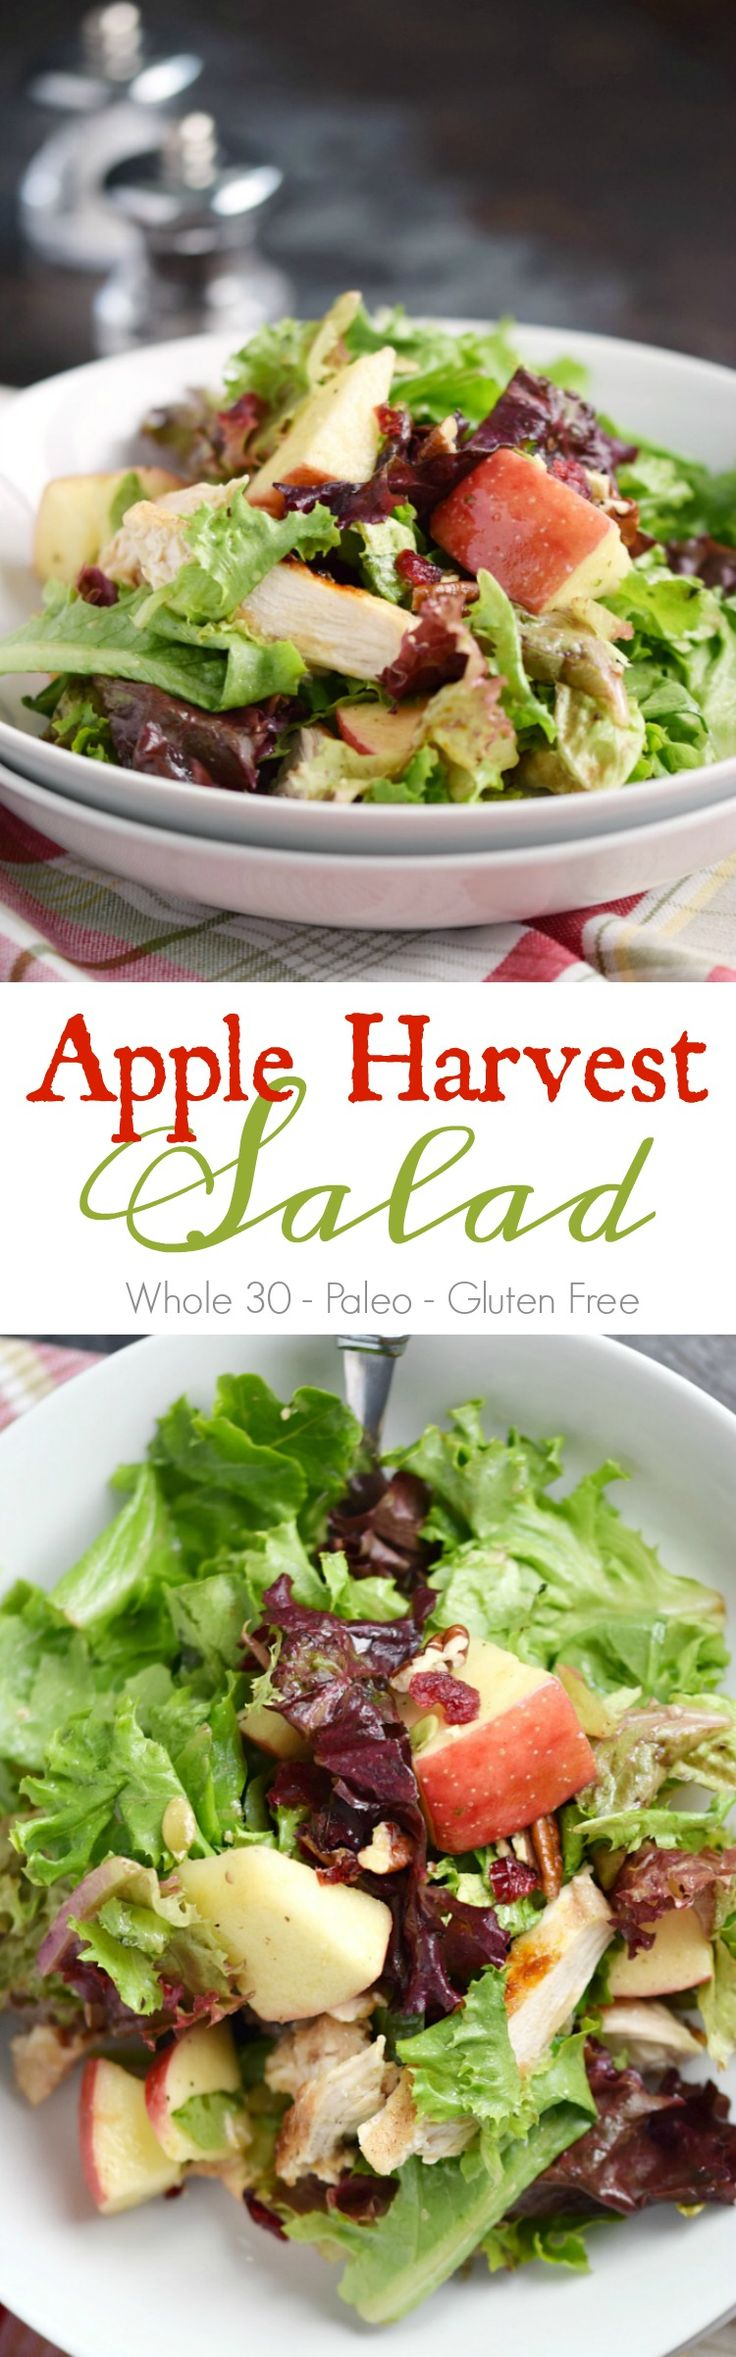 This Apple Harvest Salad is crispy, crunchy, sweet, tart, healthy, and incredibly delicious! COPYRIGHT © 2017 COOKING WITH CURLS #whole30 #paleo #glutenfree